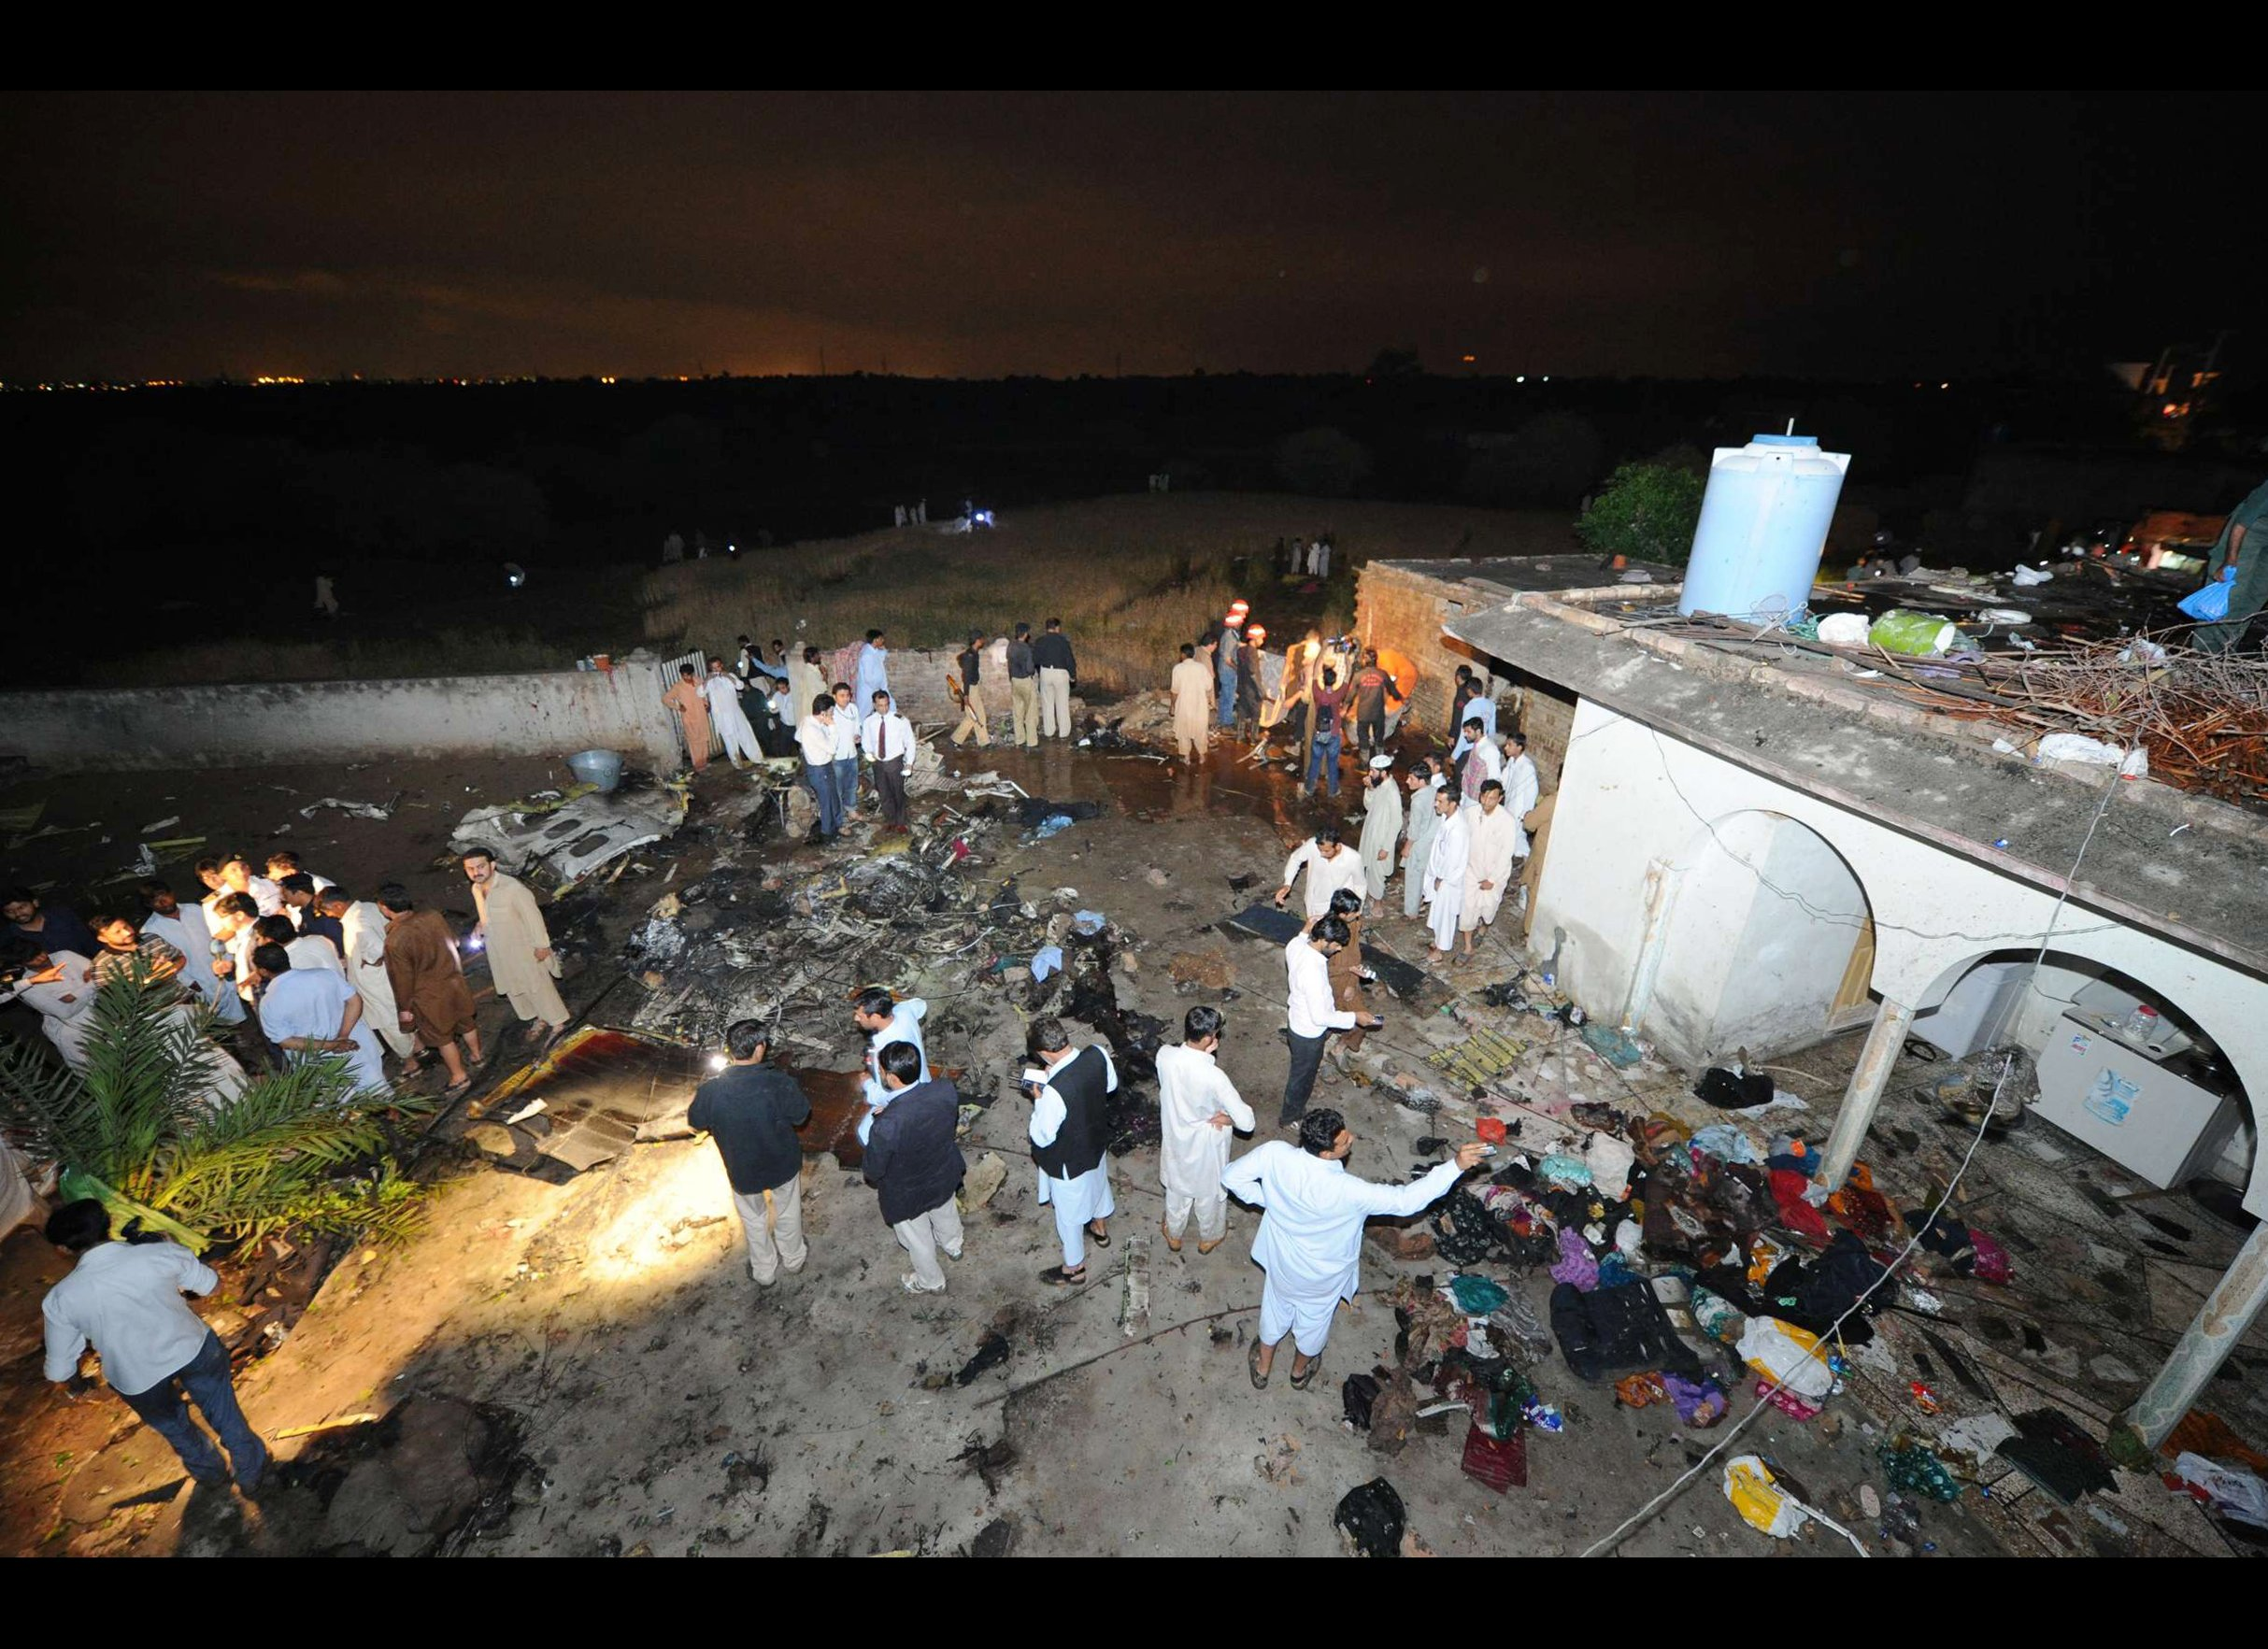 Plane Crash Bodies Photos A plane crash in islamabad